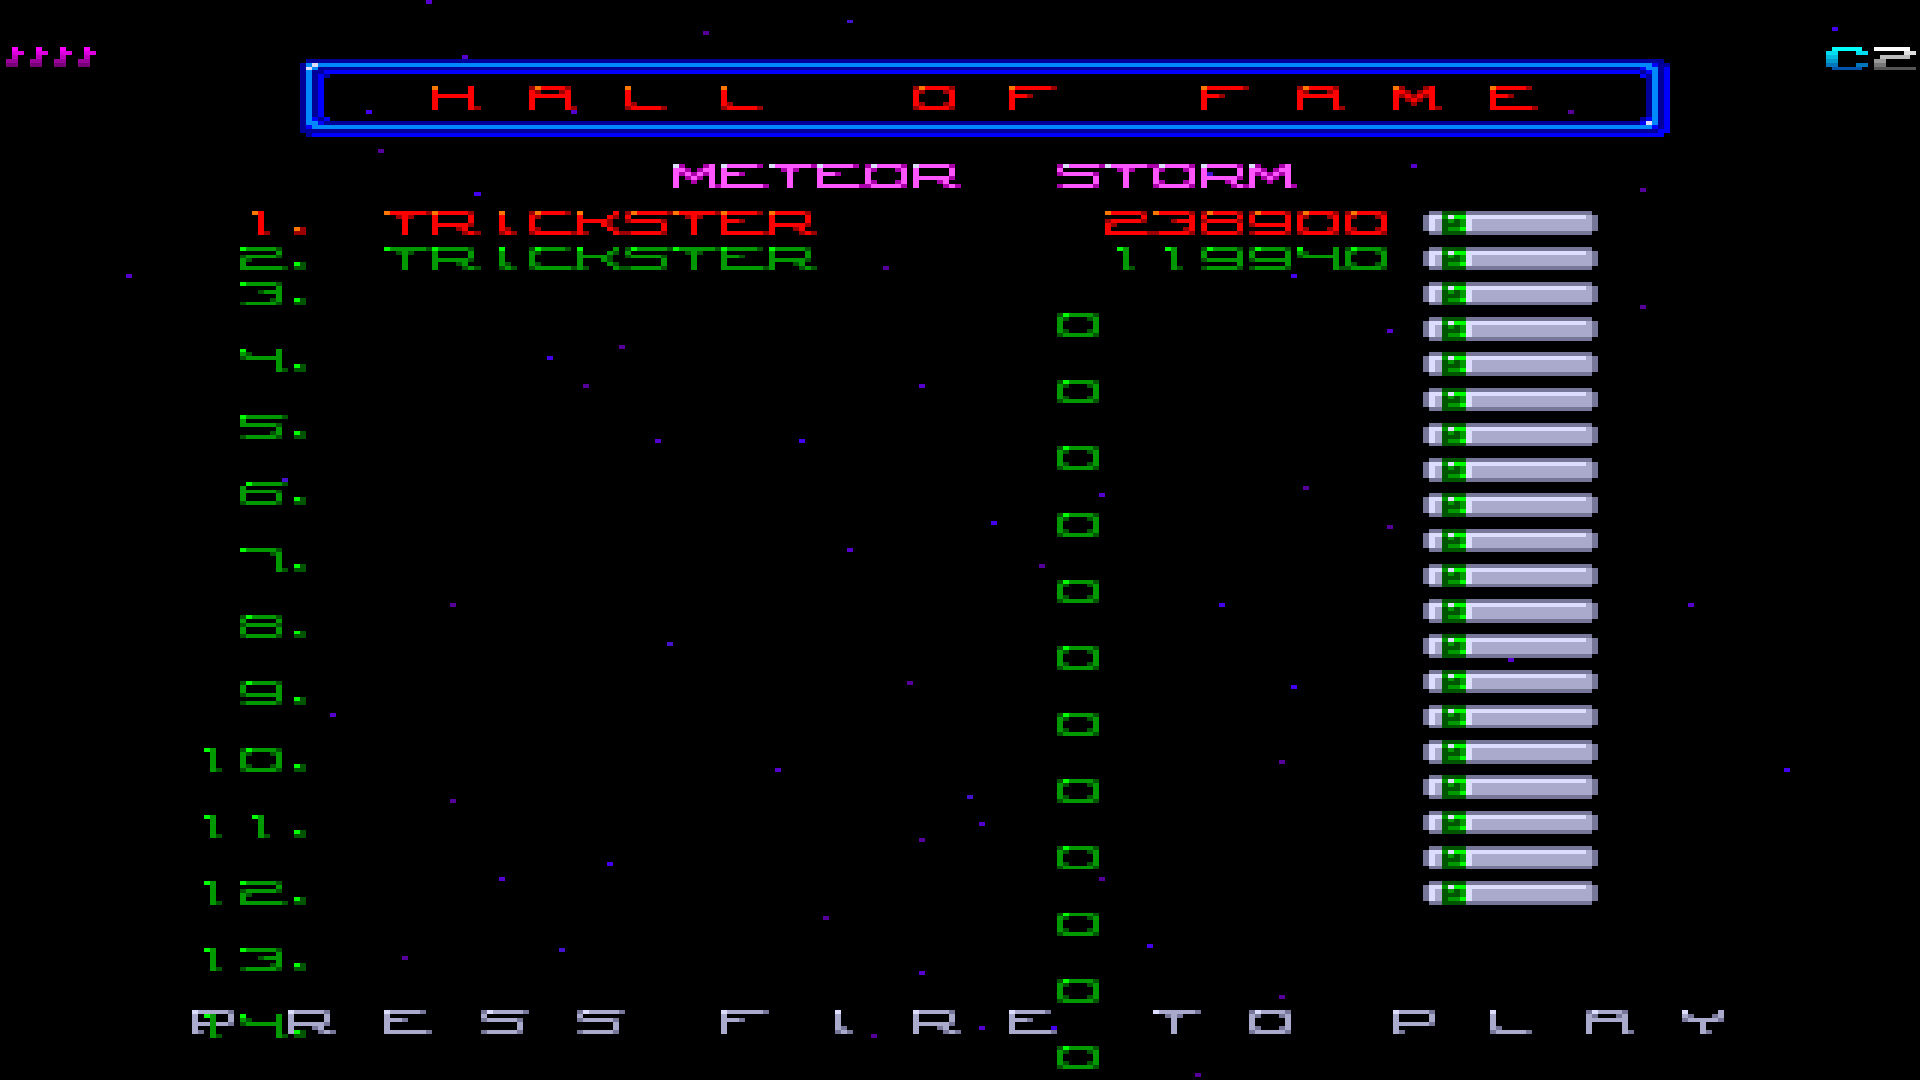 TheTrickster: Deluxe Galaga: Meteor Storm (Amiga Emulated) 238,900 points on 2015-08-02 07:26:10